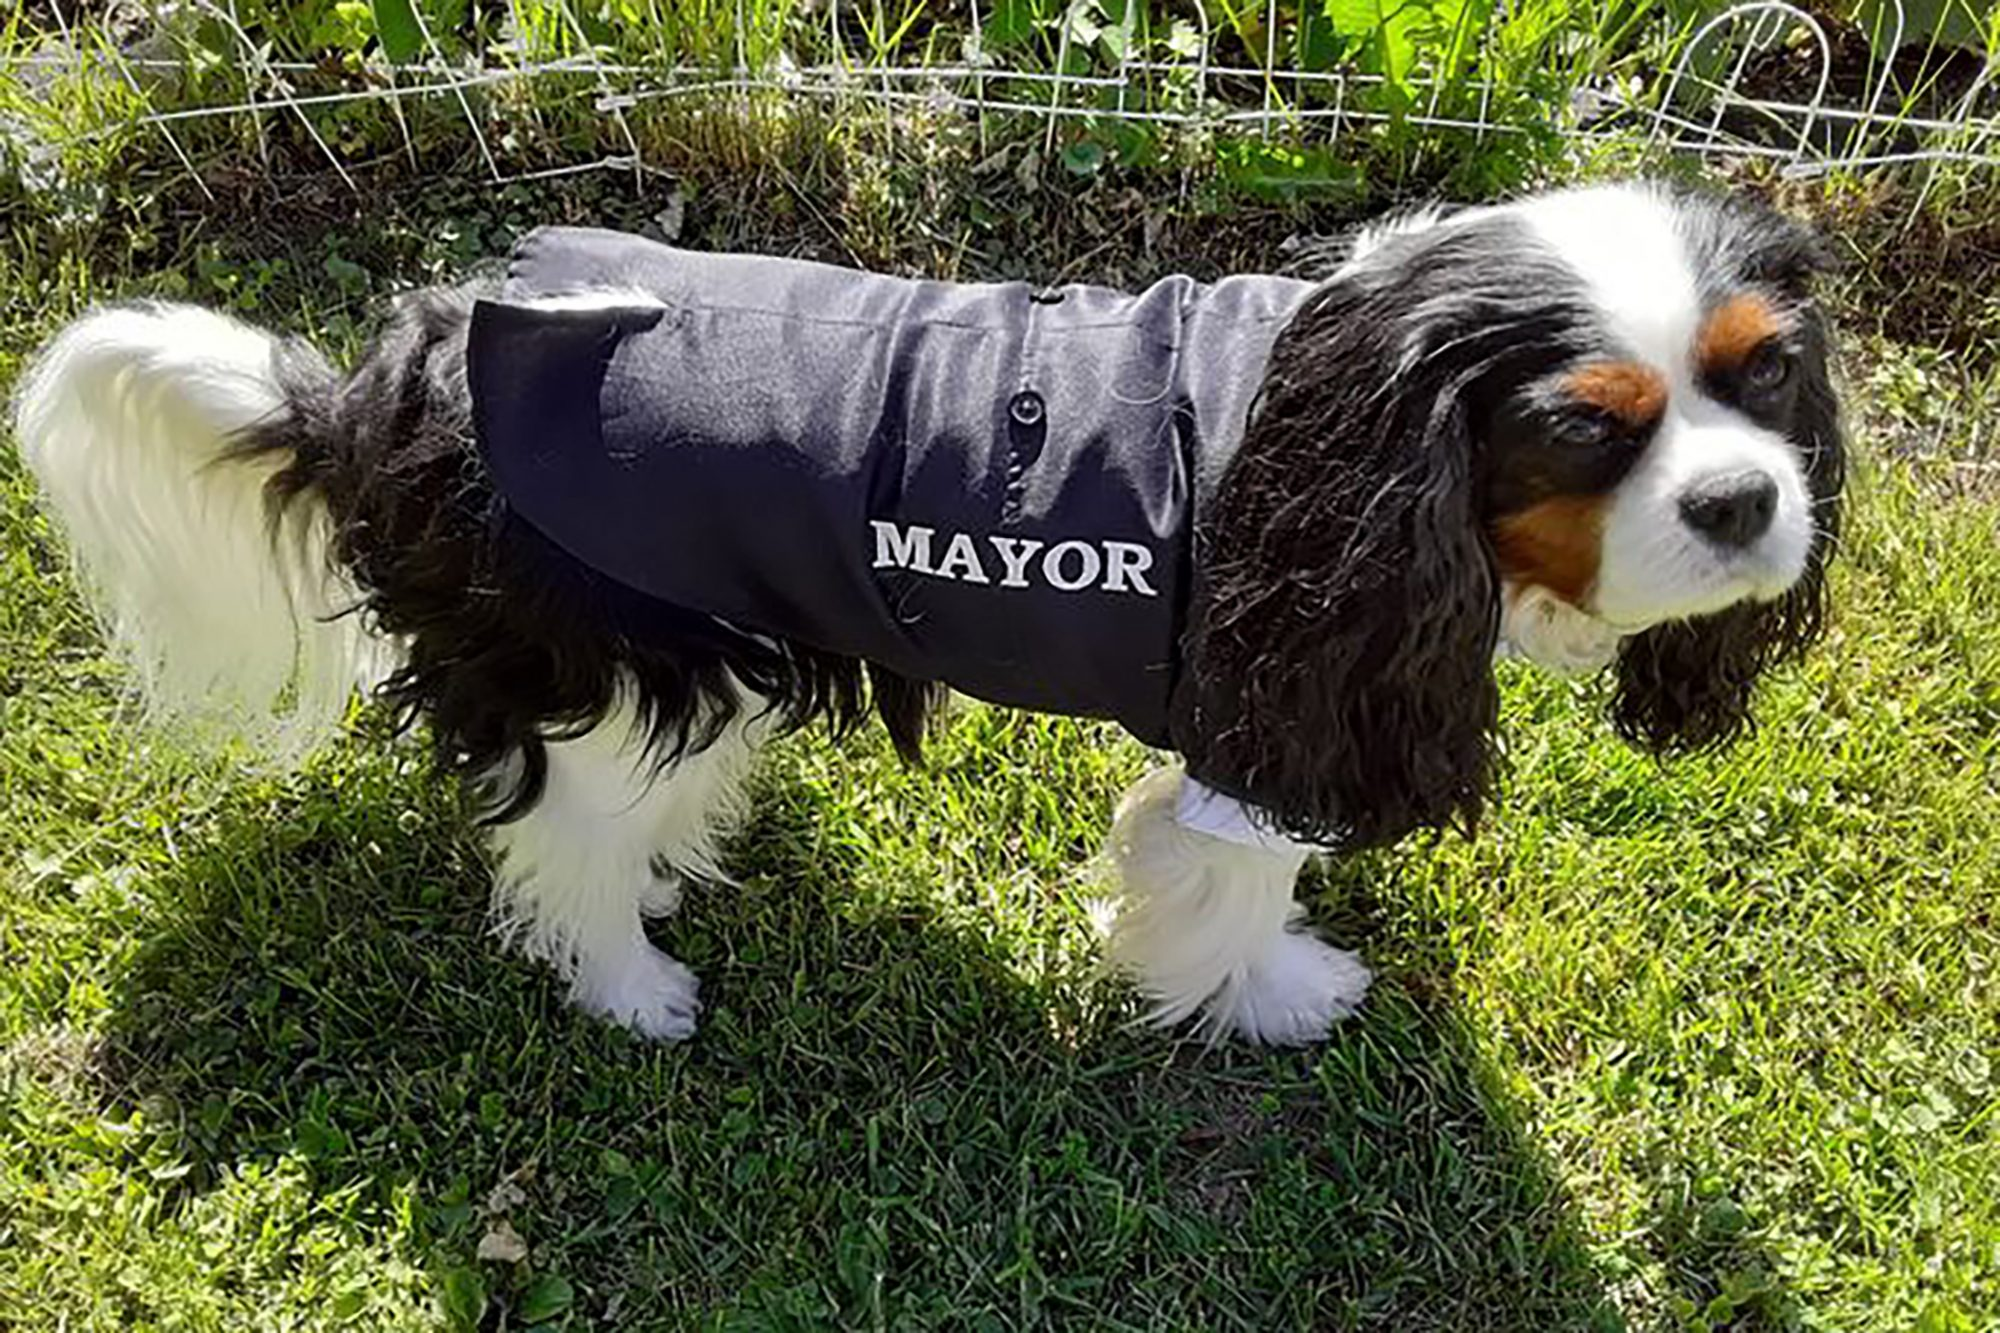 Photo of Murfee the therapy dog with mayor coat